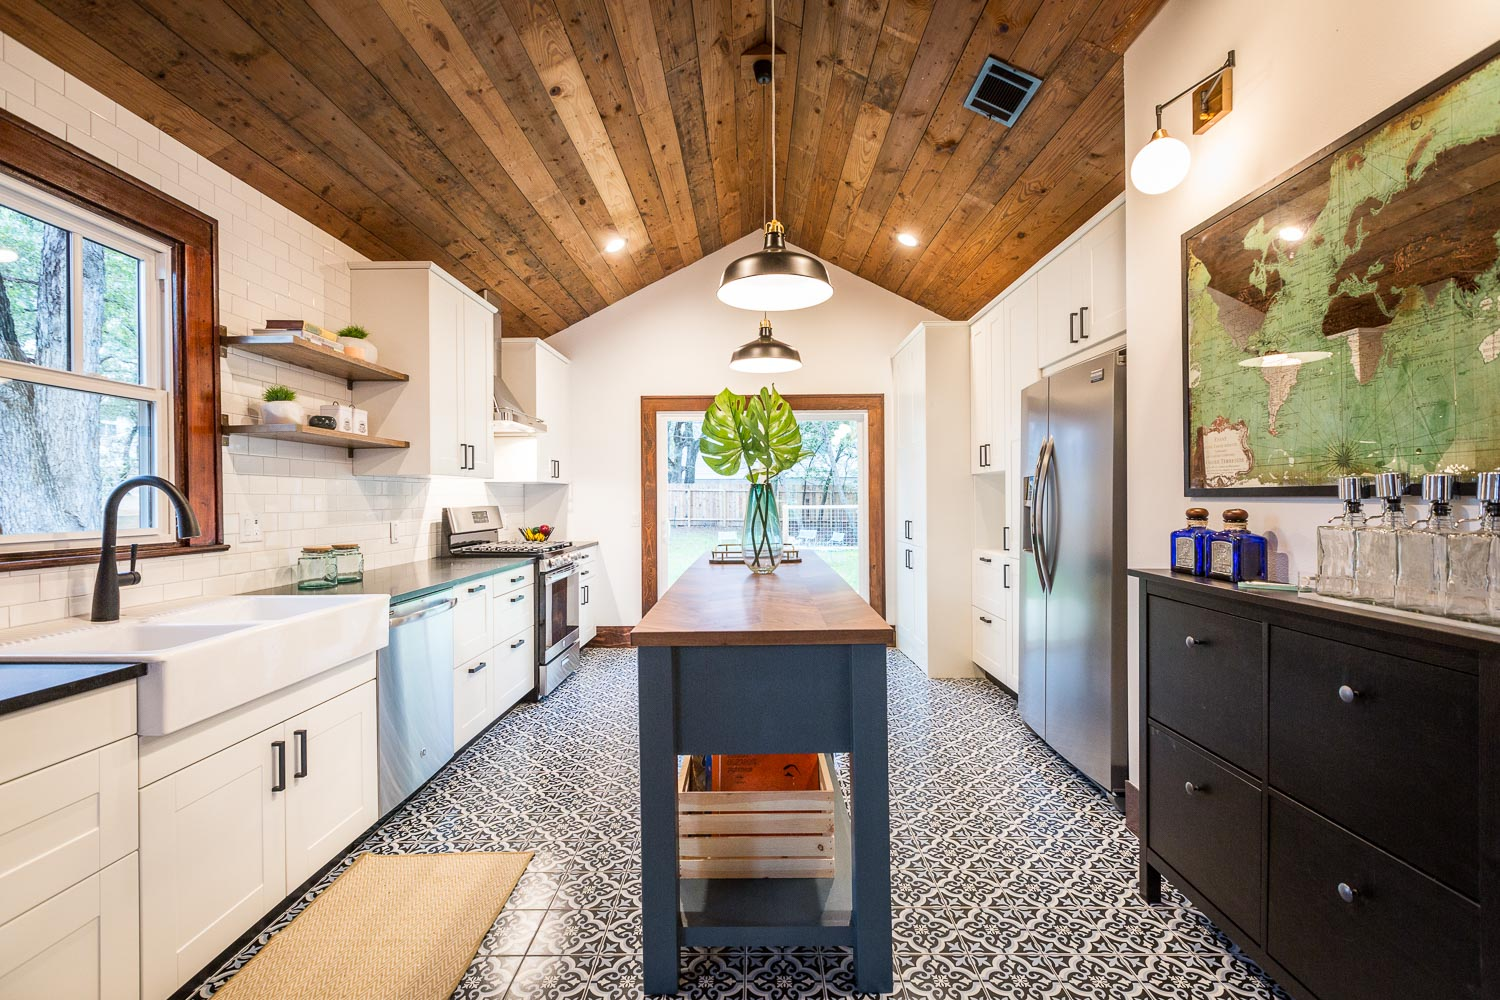 The incredible kitchen was made by combining 2 rooms. The sliding door leads to the back yard. The Spanish tile / Cementi style tile is actually under $4 a square foot! We vaulted the ceilings and added reused shiplap from the house remodel. Honed black granite countertops, a custom farmhouse teal island with walnut butcher block top, matte black faucet and hardware,floating shelves compliment the Ikea Grimslov shaker style cabinets. The bar to the right is an Ikea shoe shelf which is low profile. Above it is a World Market mirror. We love the kitchen's warmth and personality especially with the original dark wood trim!